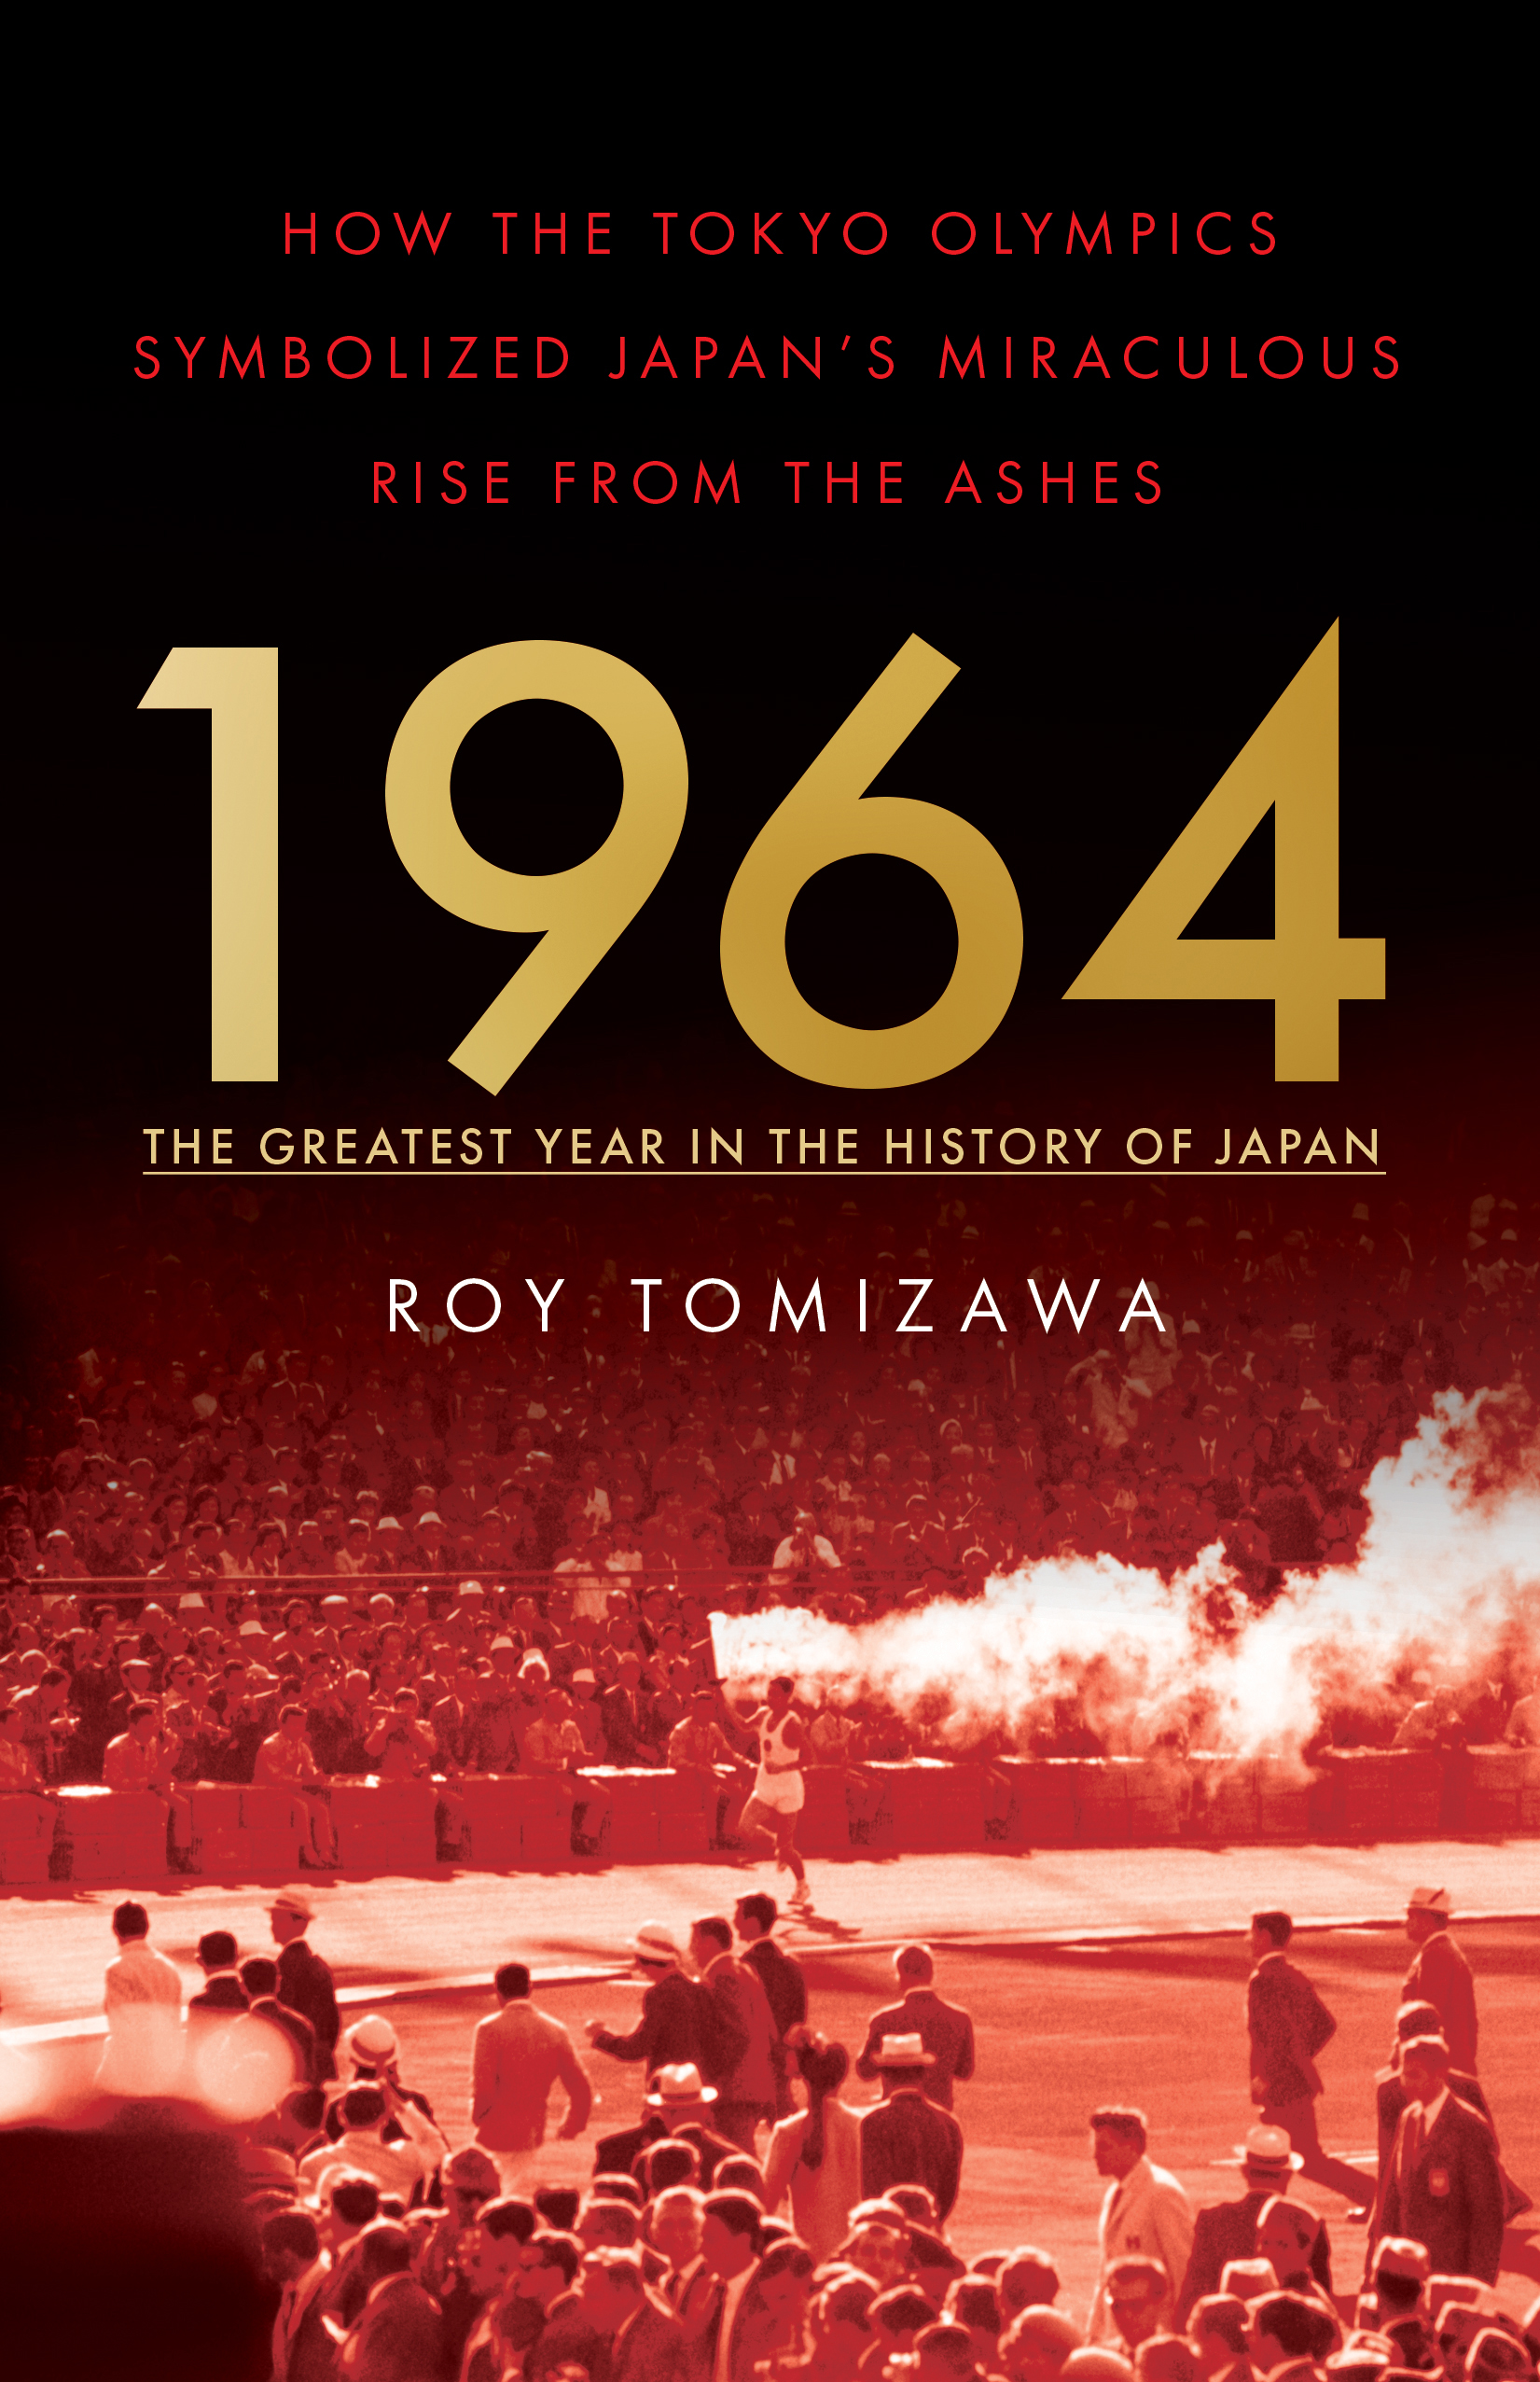 1964 – The Greatest Year in the History of Japan